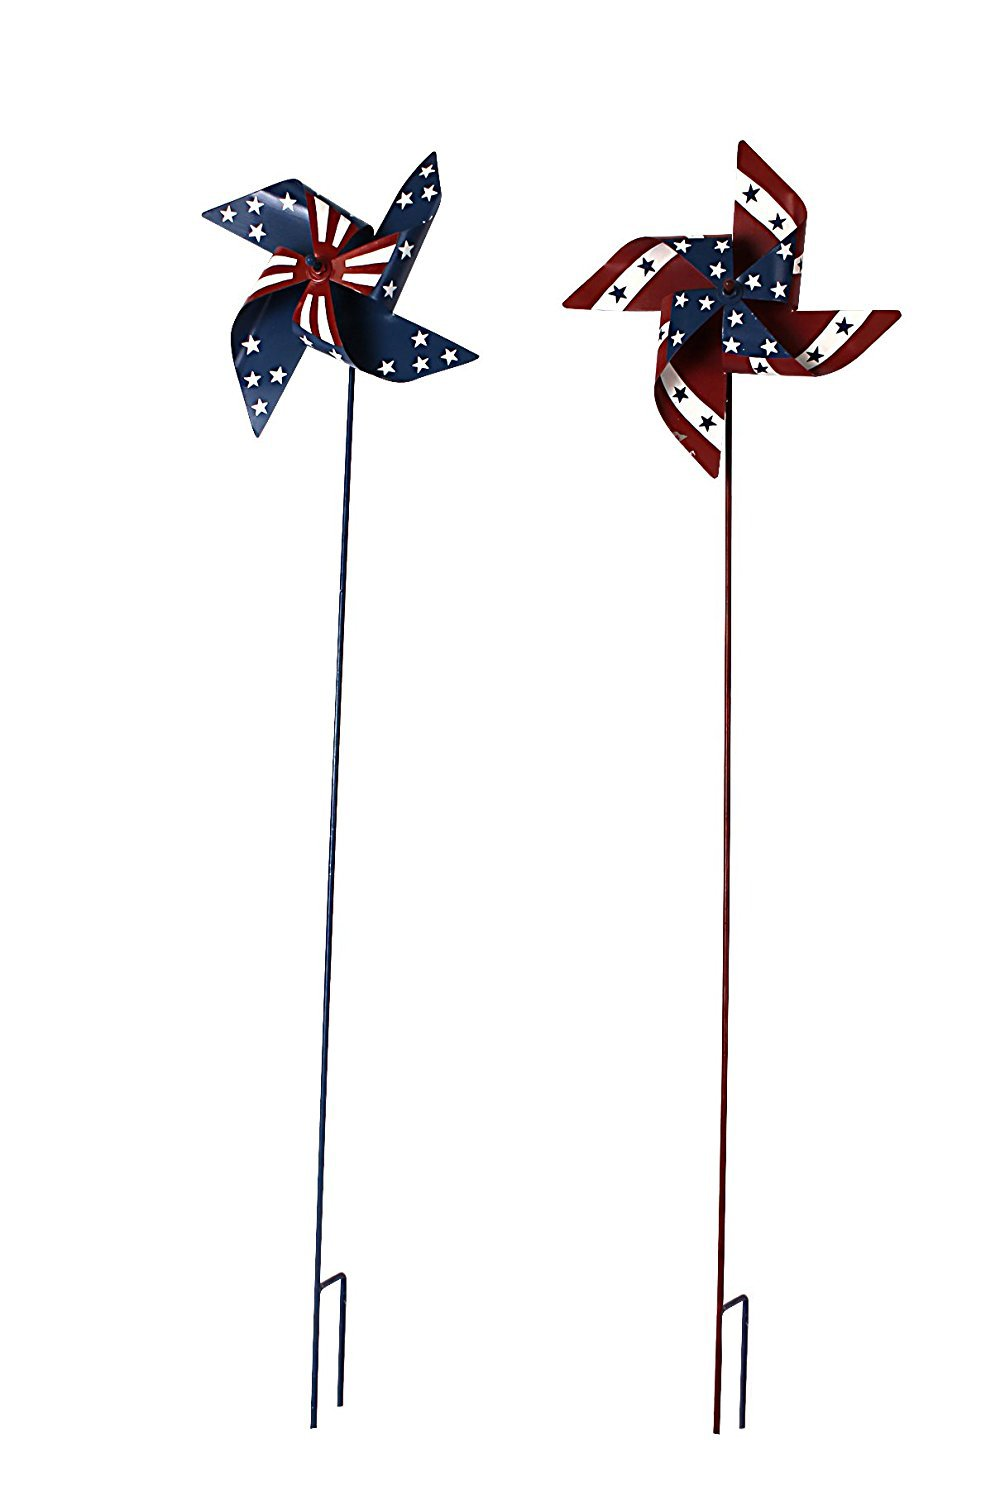 Waroom Home Patriotic Pinwheel Set of 2, American Flag Metal Wind Spinner for 4th of July Decoration, Stars and Stripes, Red White and Blue (L)